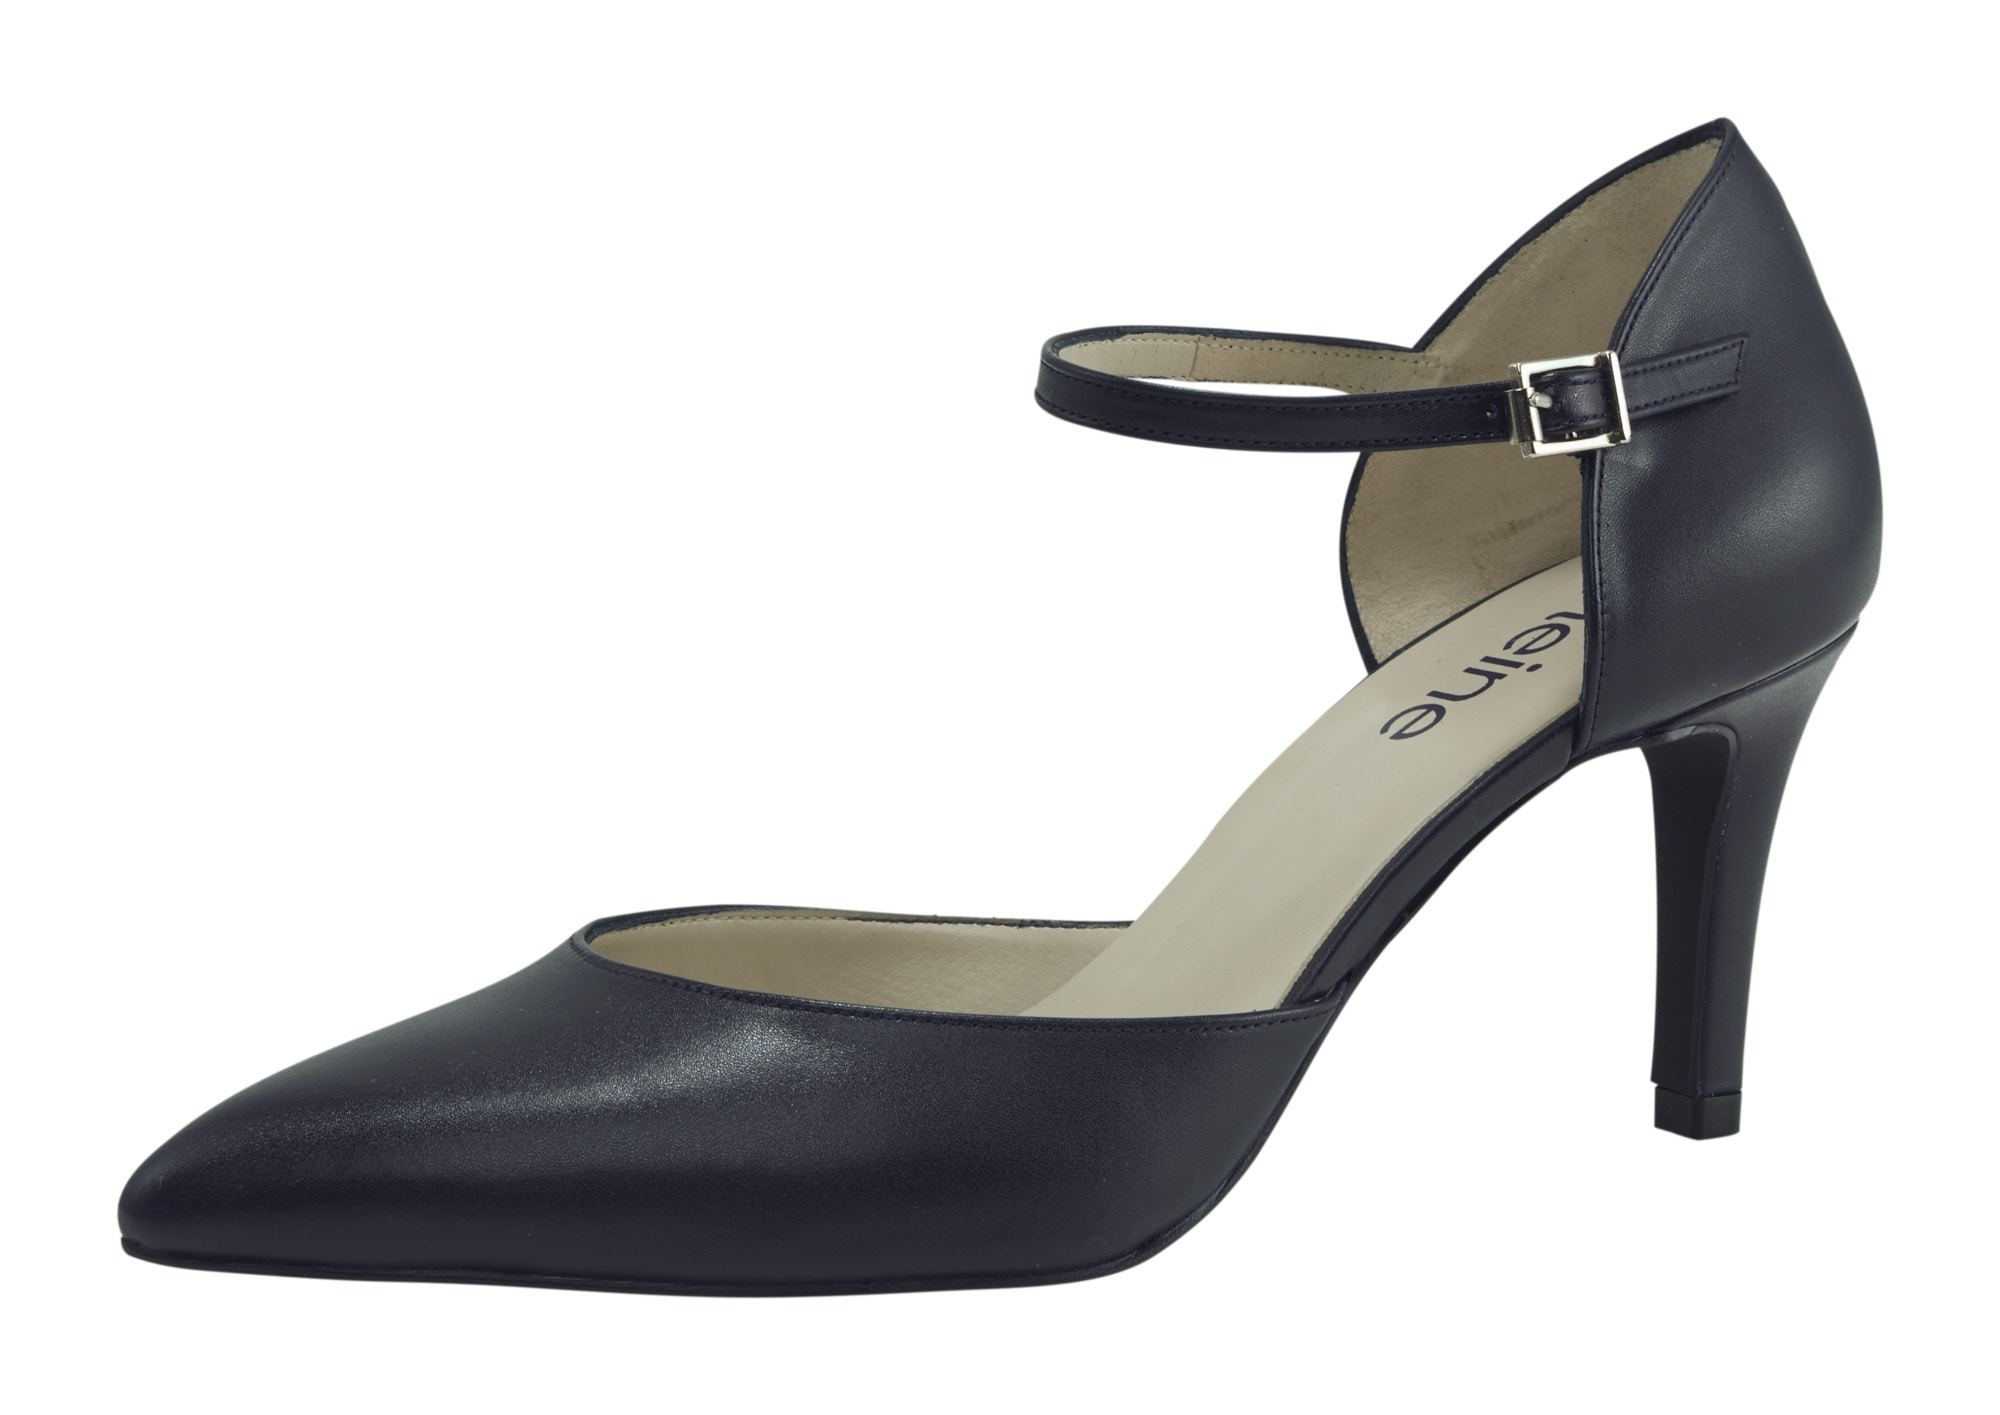 Heine Pumps Damenmode/Schuhe/High Heels/Pumps